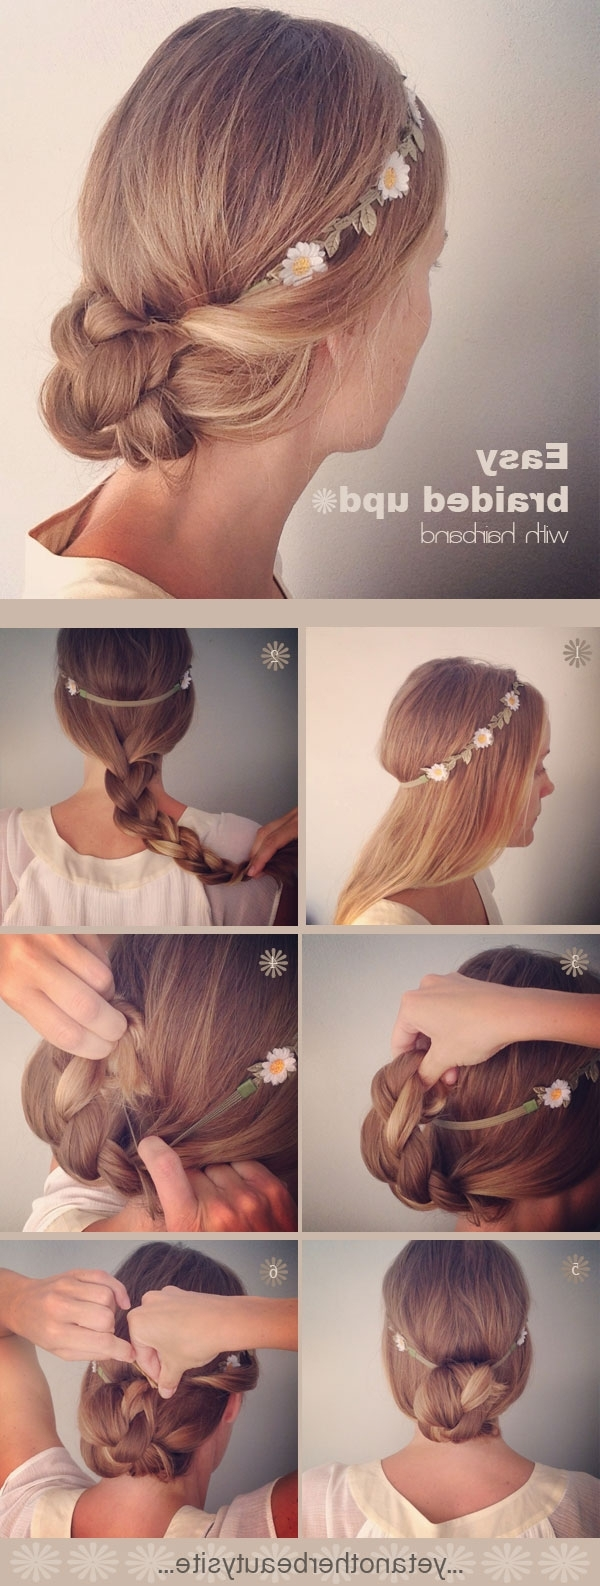 20 Diy Wedding Hairstyles With Tutorials To Try On Your Own Regarding Newest Diy Wedding Hairstyles (View 3 of 15)